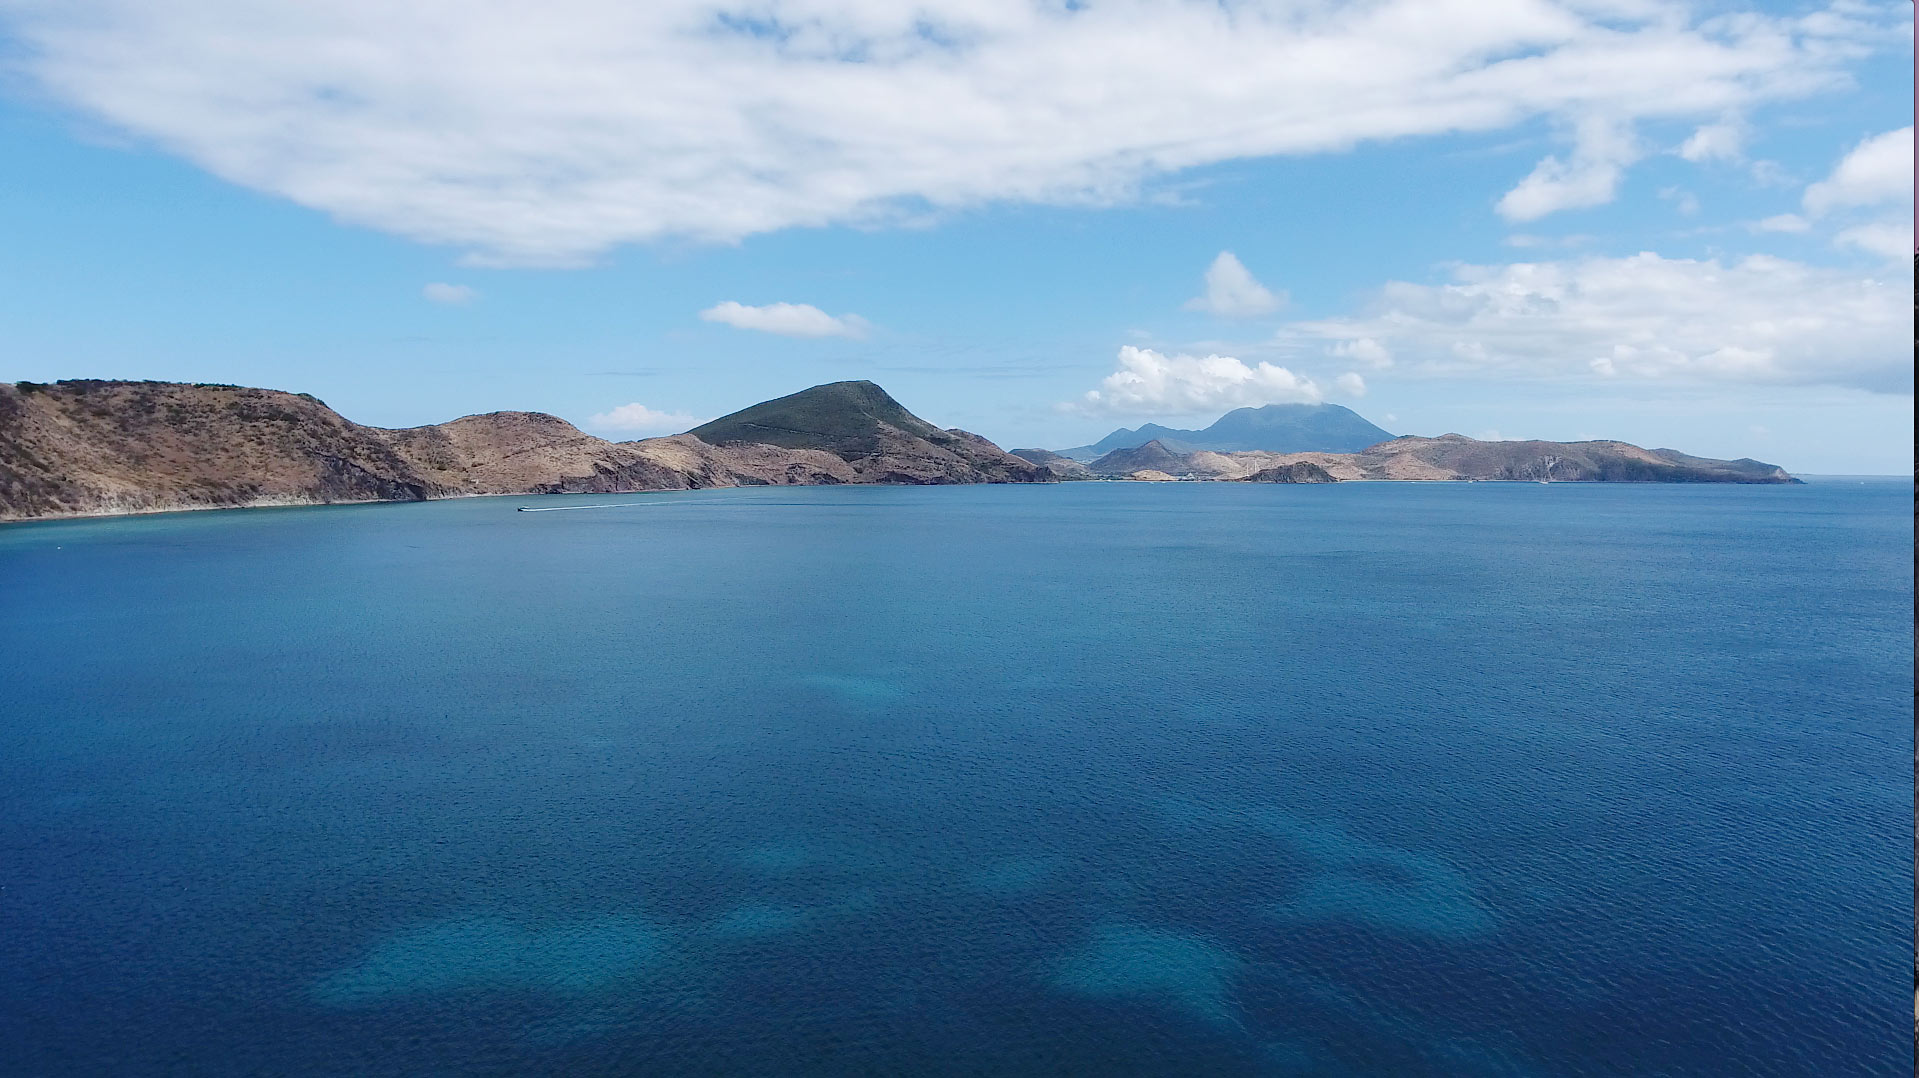 Drone capture of Frigate Bay in St Kitts